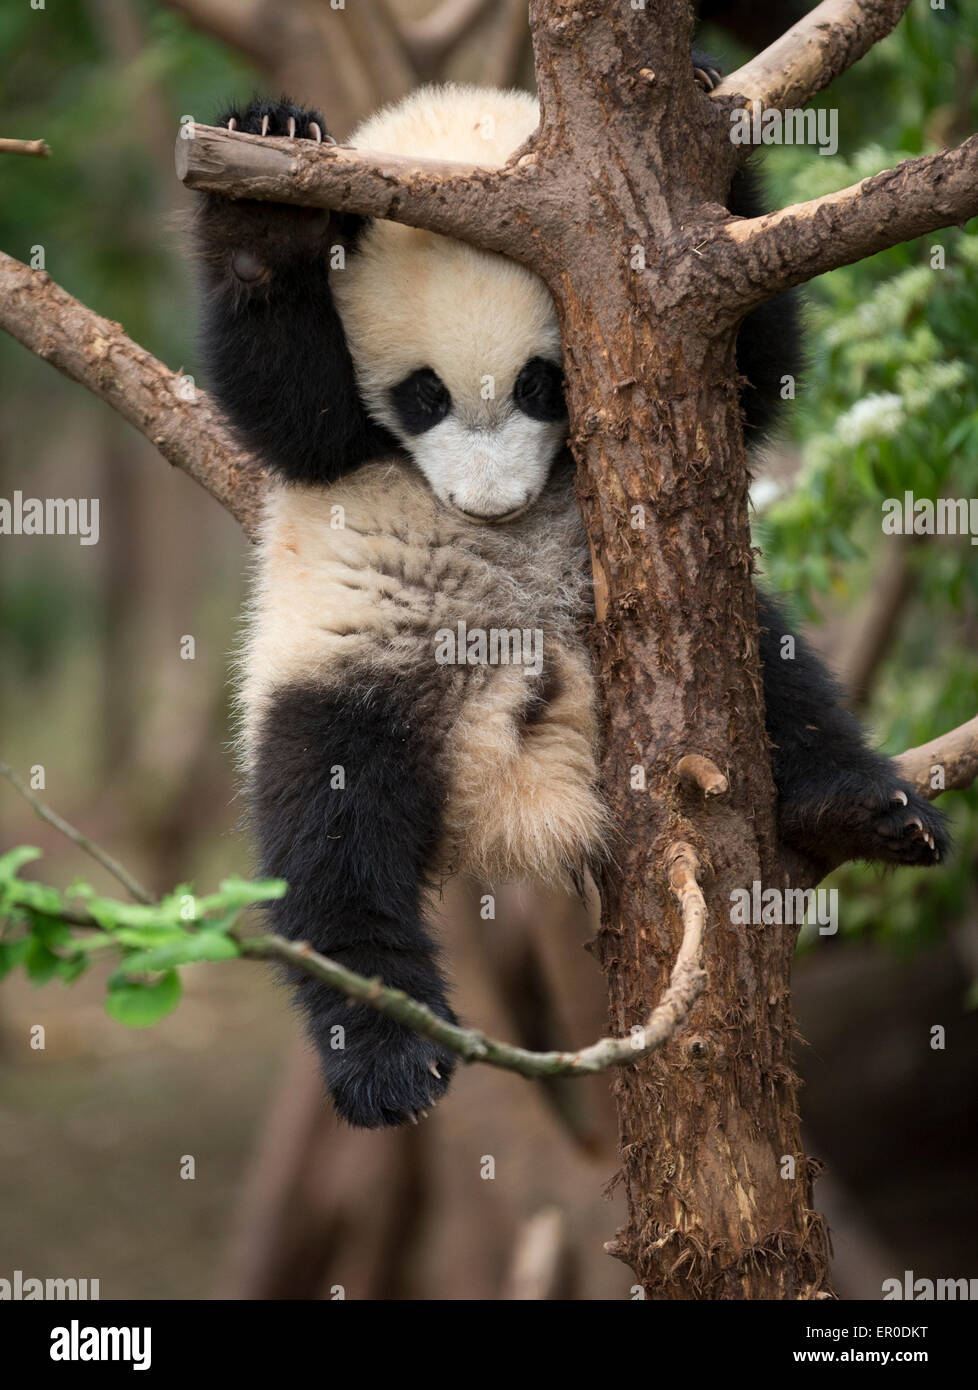 Giant panda (Ailuropoda melanoleuca) at Chengdu Panda Breeding and Research Center - Stock Image